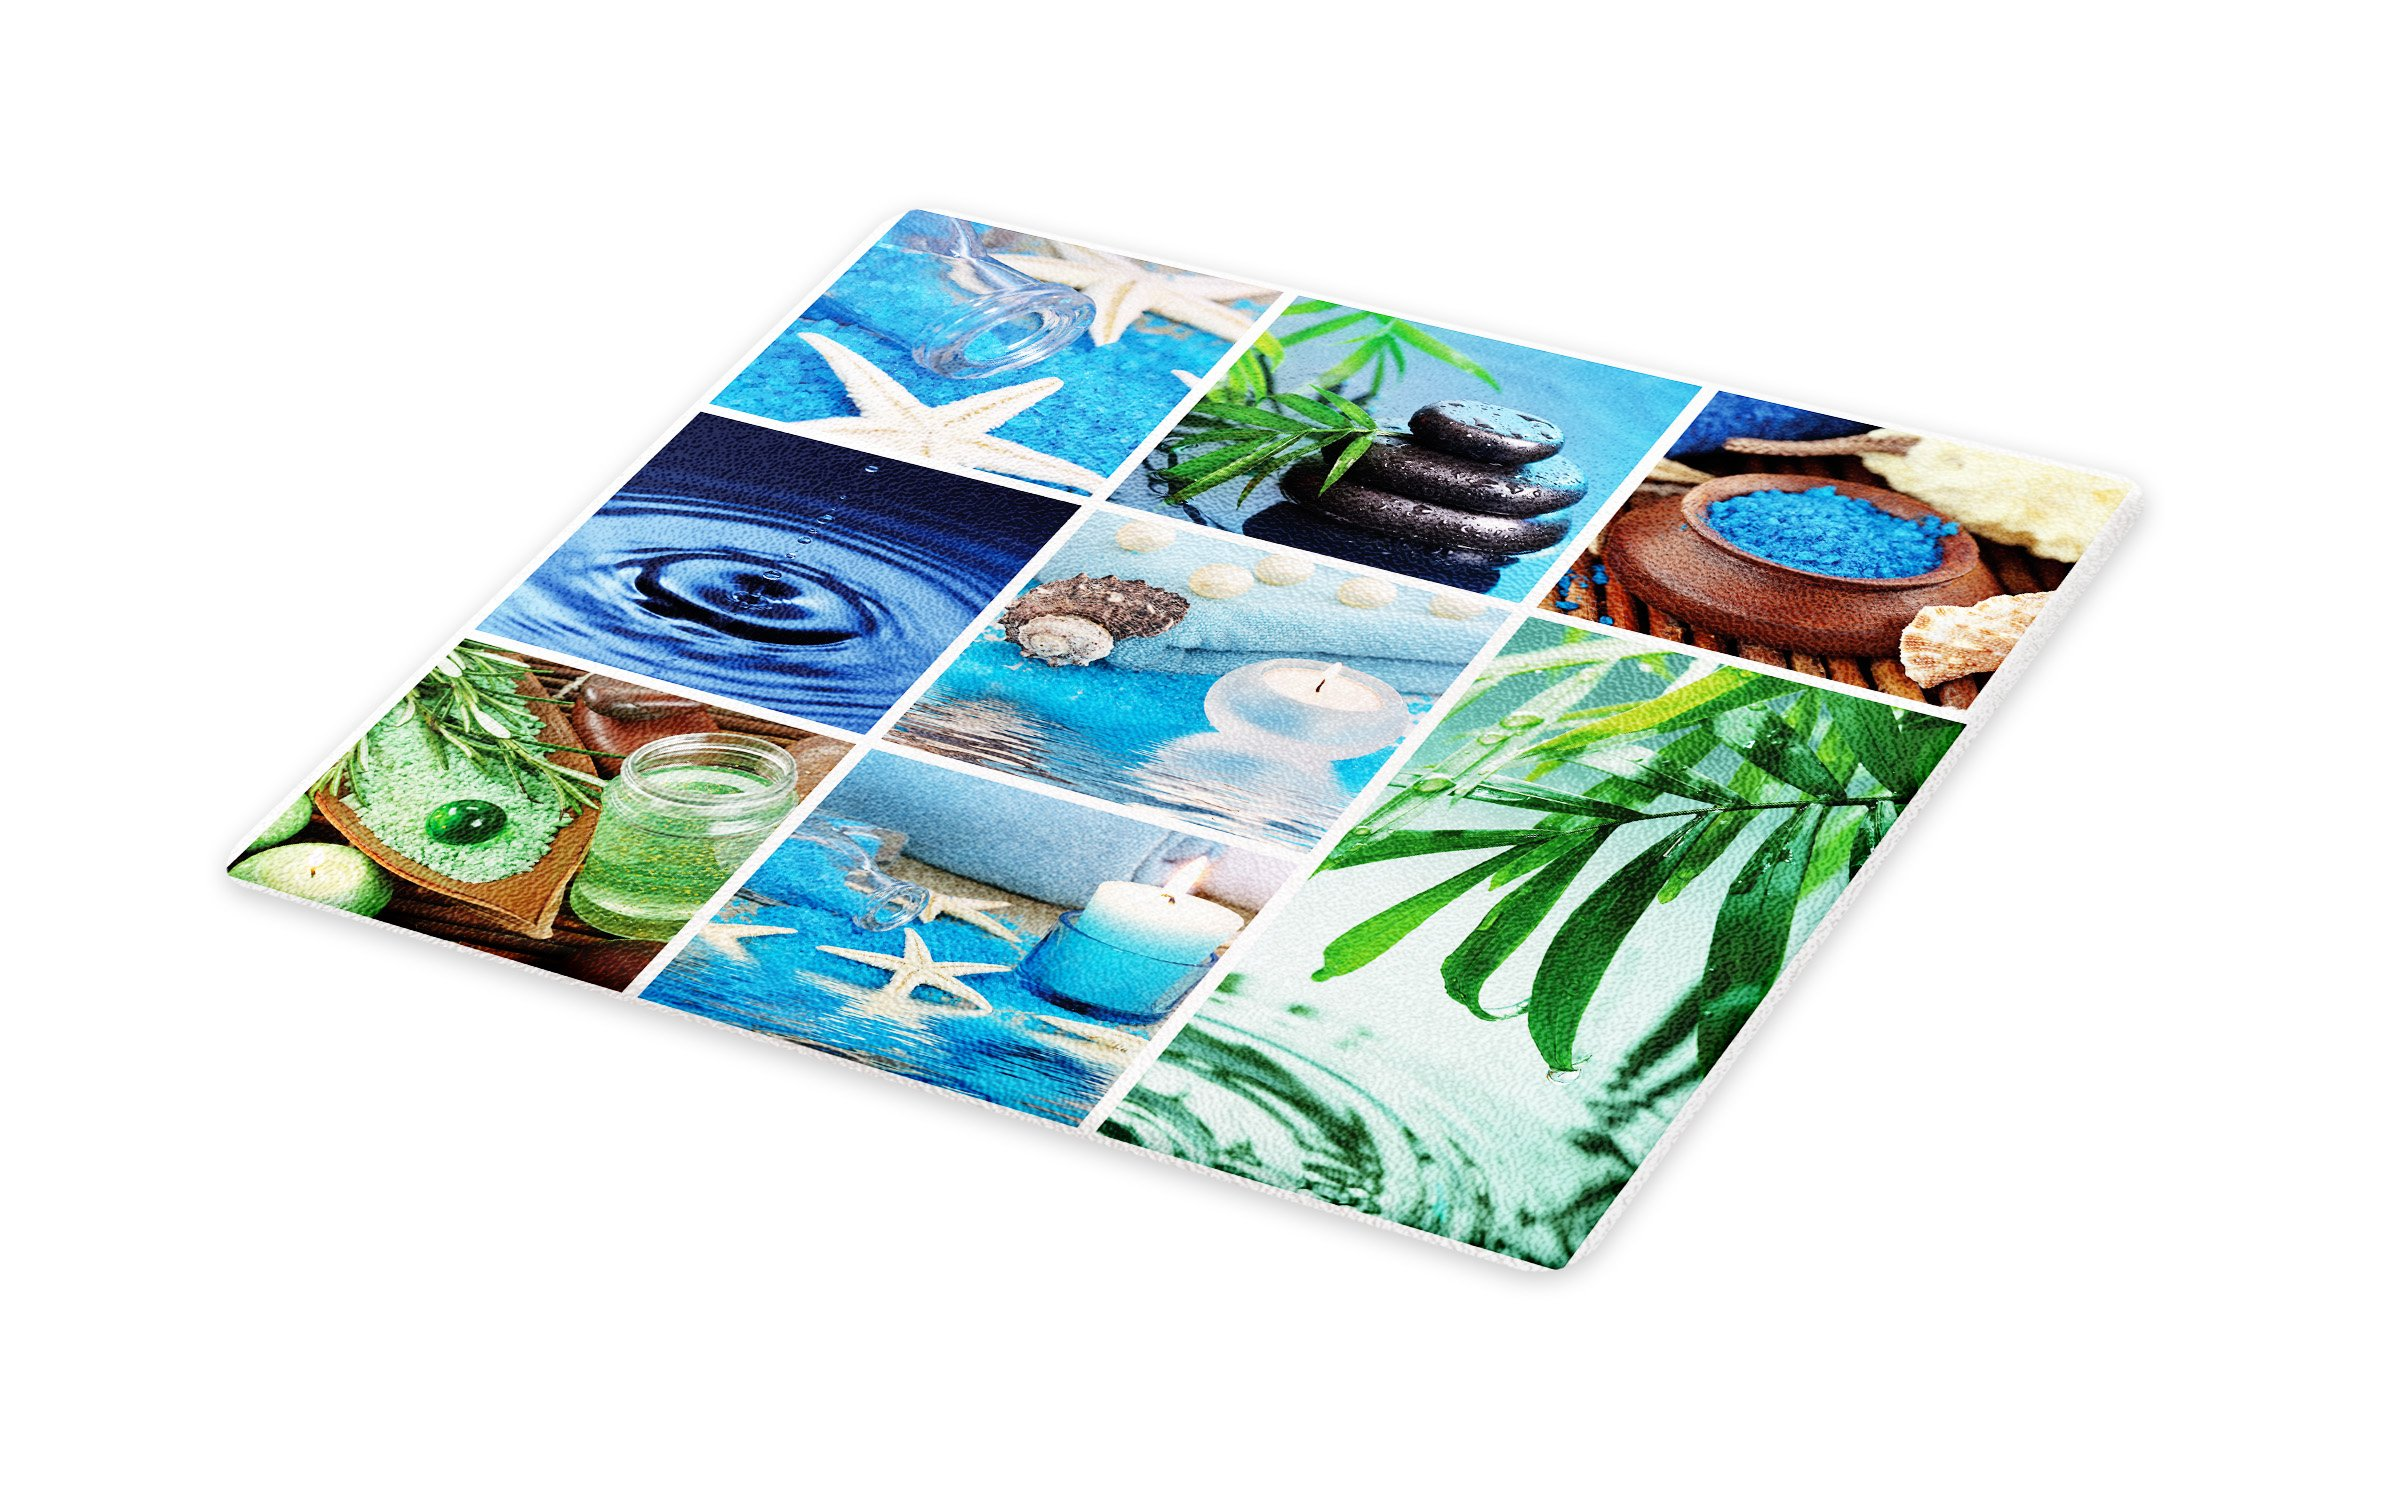 Lunarable Spa Cutting Board, Ocean Themed Collage with Starfish Stone Botanic Plants Aqua and Candles Image, Decorative Tempered Glass Cutting and Serving Board, Small Size, Blue and Green by Lunarable (Image #1)